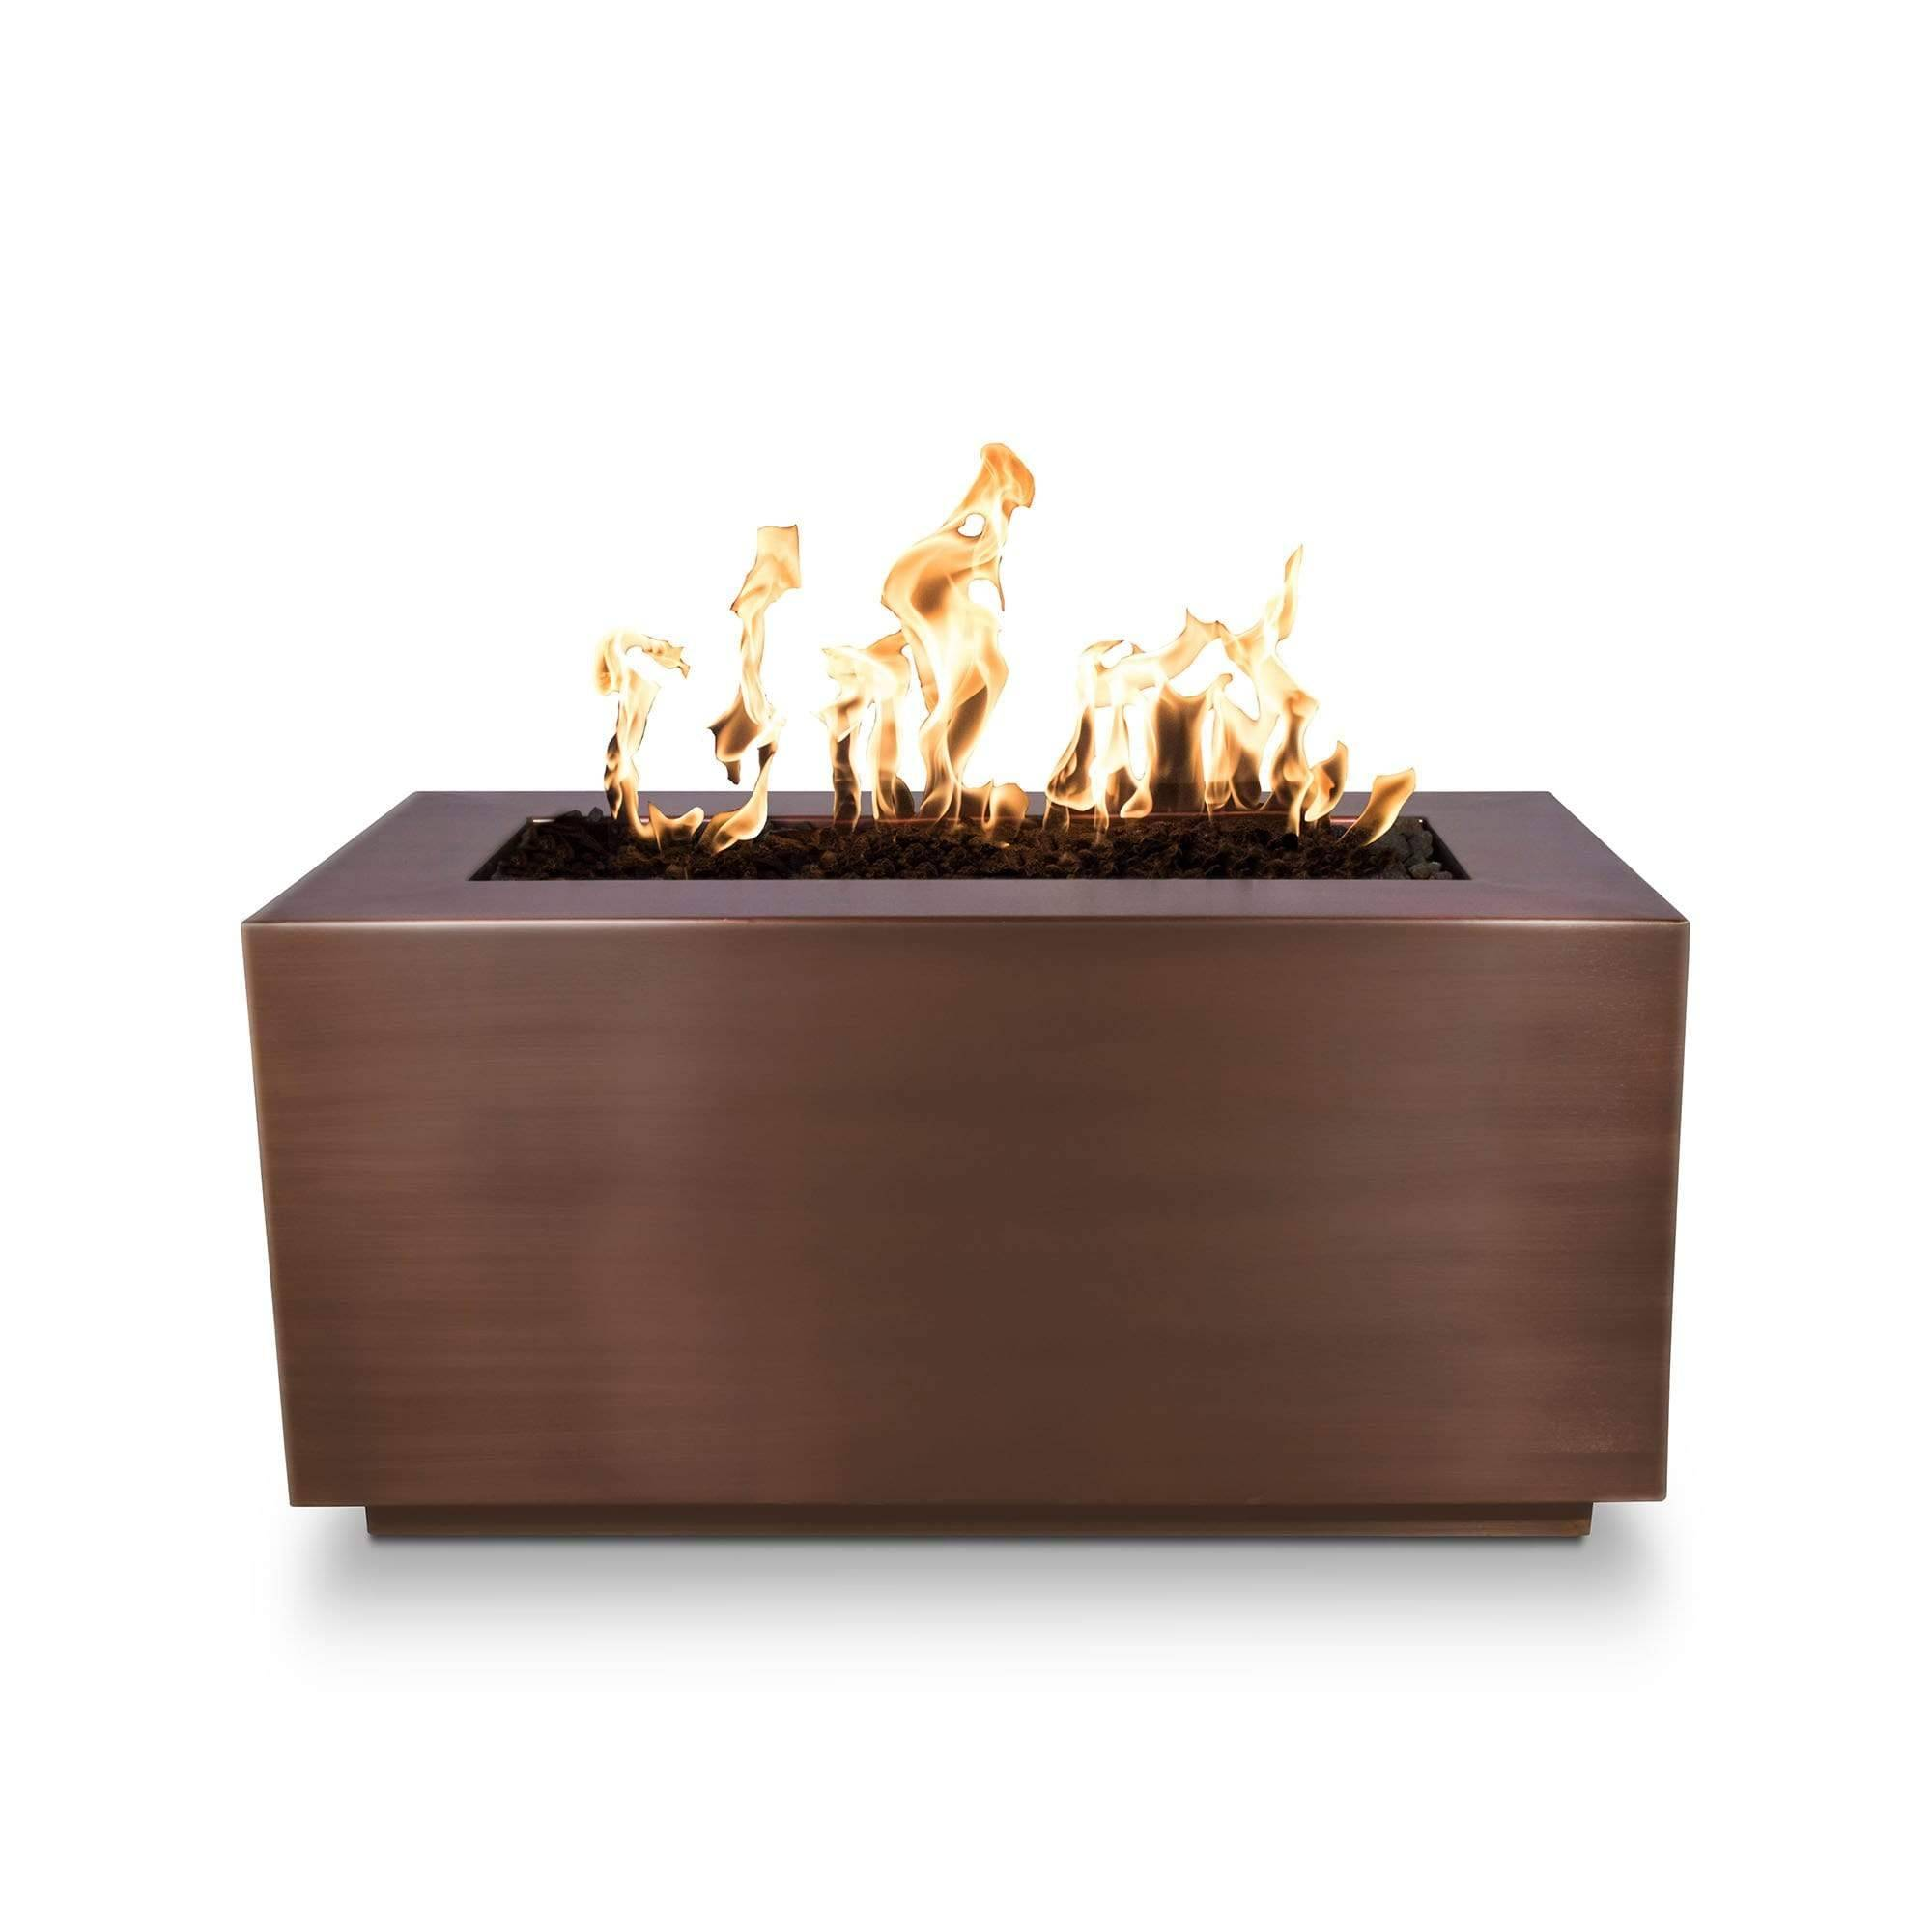 The Outdoor Plus Pismo Metal Fire Pit OPT-R8424 Fire Pit The Outdoor Plus Hammered Copper Electronic Ignition Natural Gas